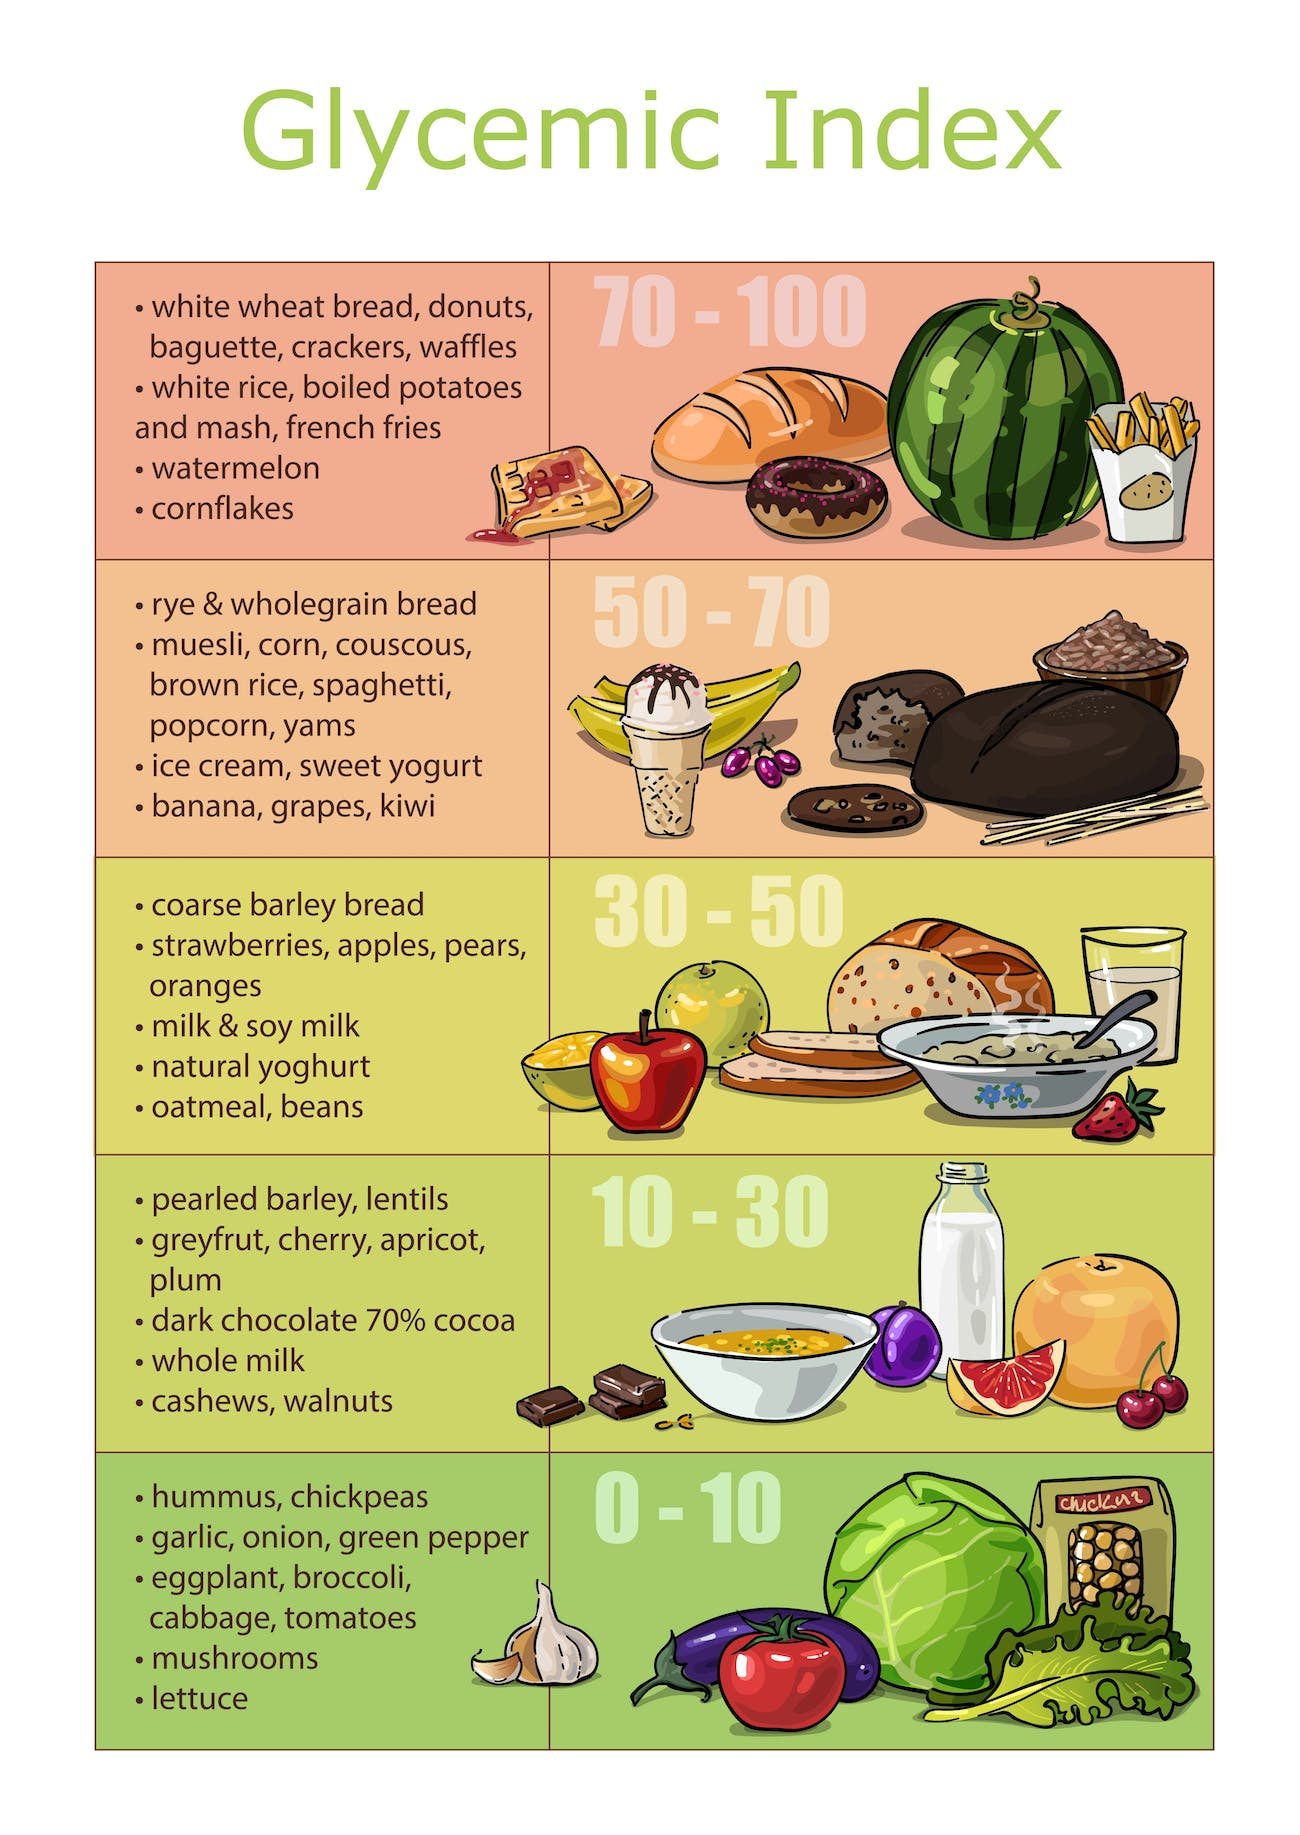 glycemic index blood sugar